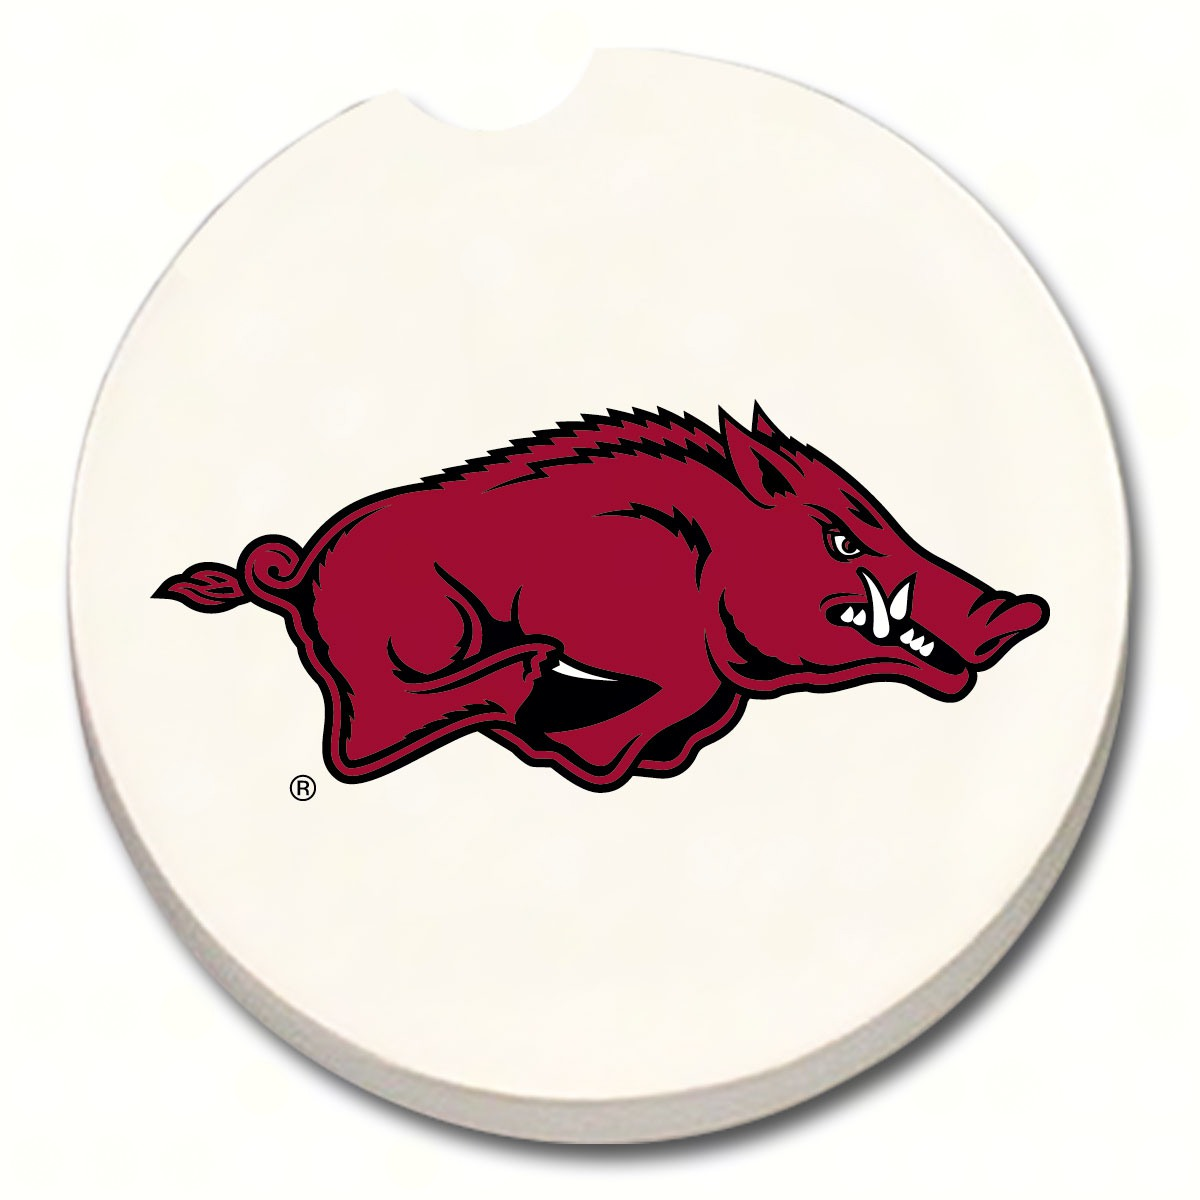 Arkansas Razorbacks Car Coaster